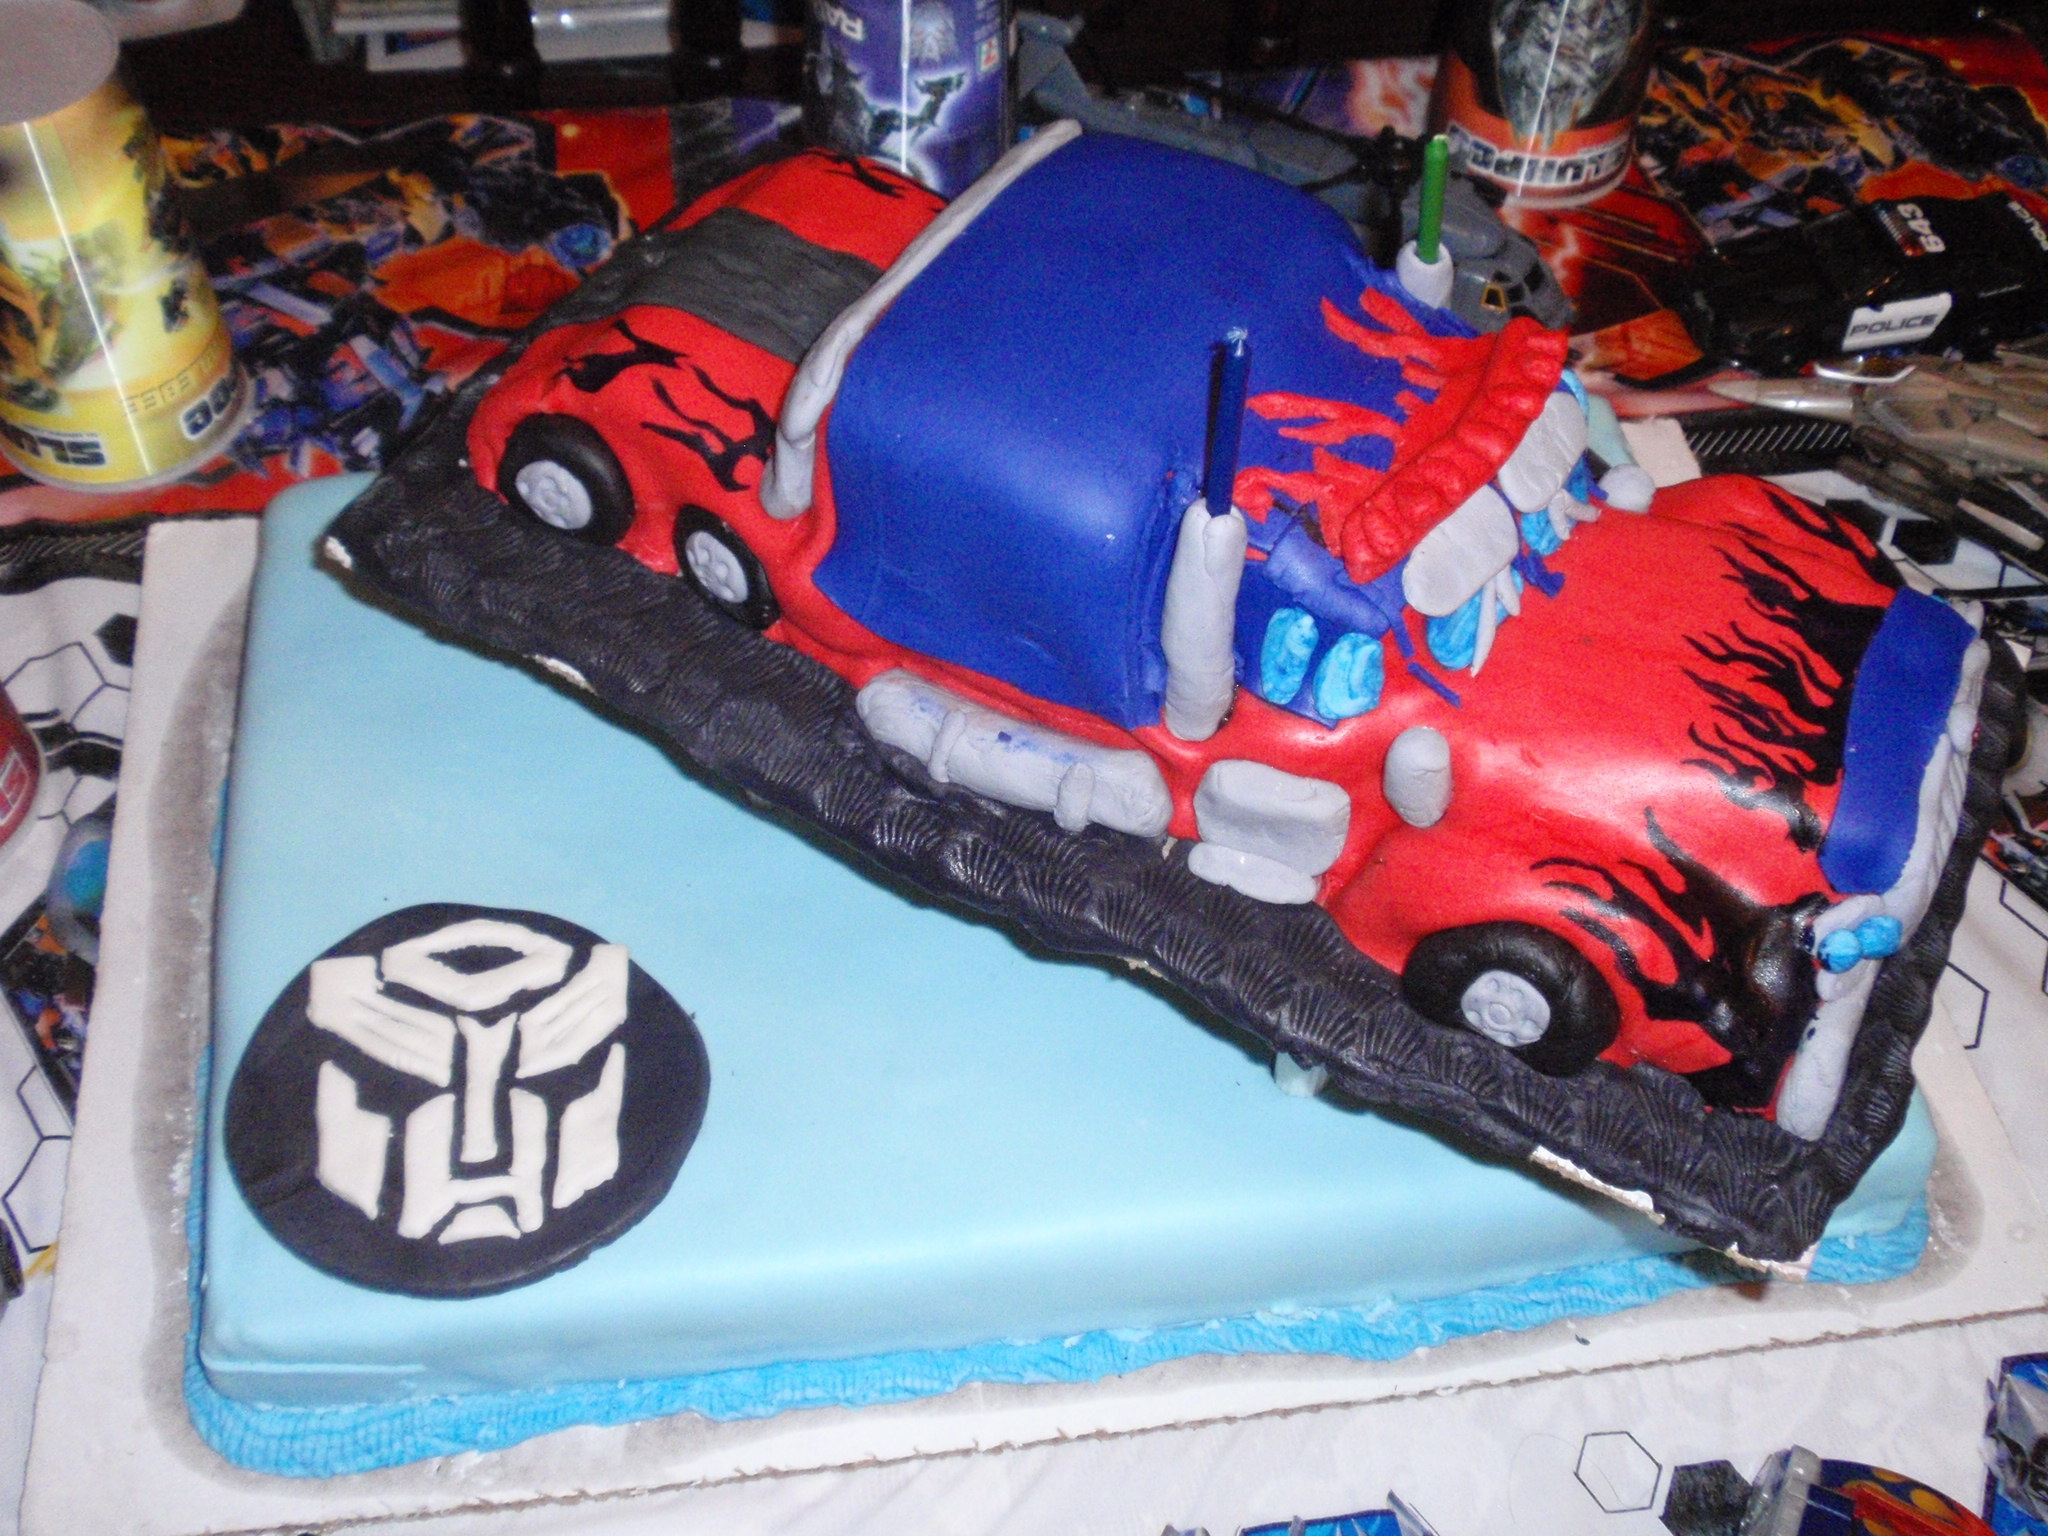 Pleasant Optimus Prime Transformer Birthday Cake Funny Birthday Cards Online Elaedamsfinfo